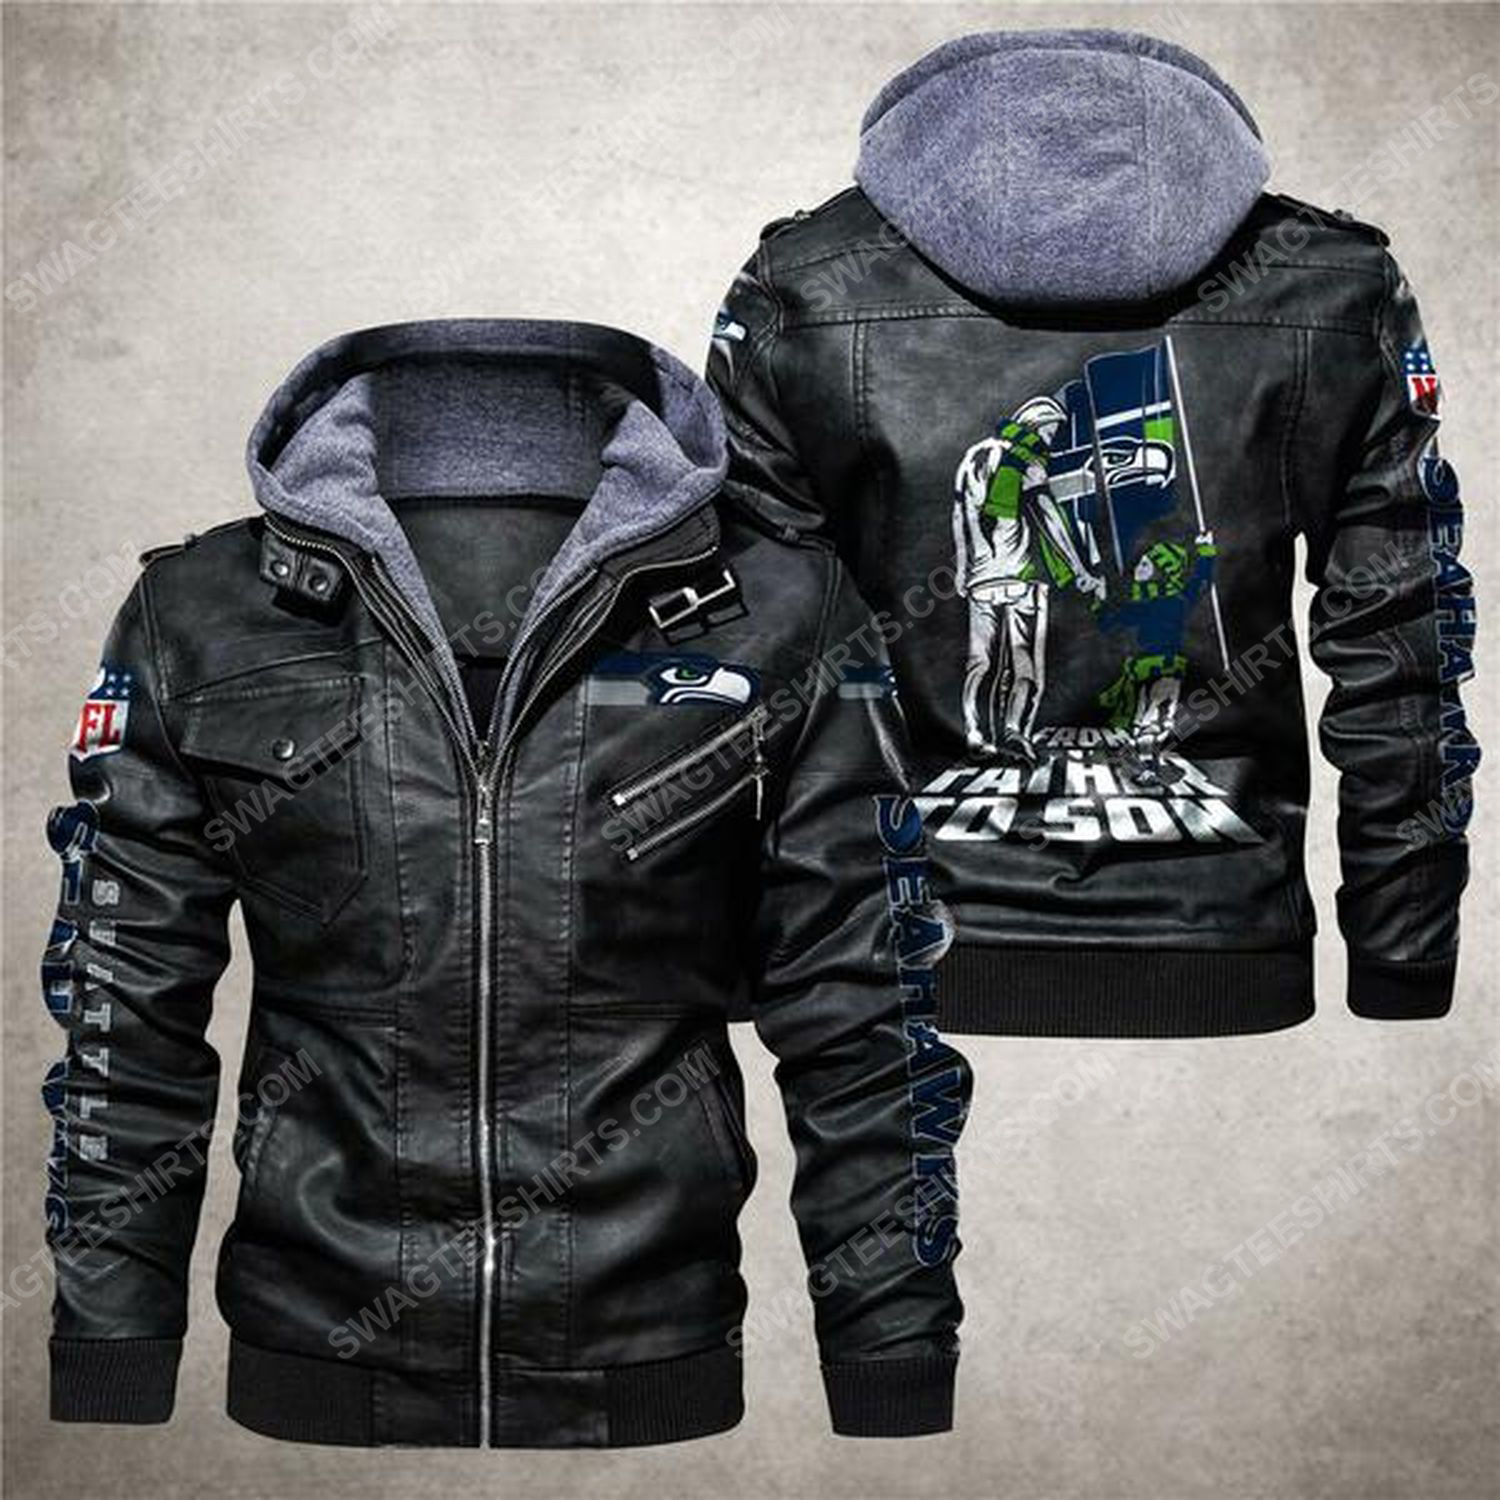 National football league seattle seahawks from father to son leather jacket - black